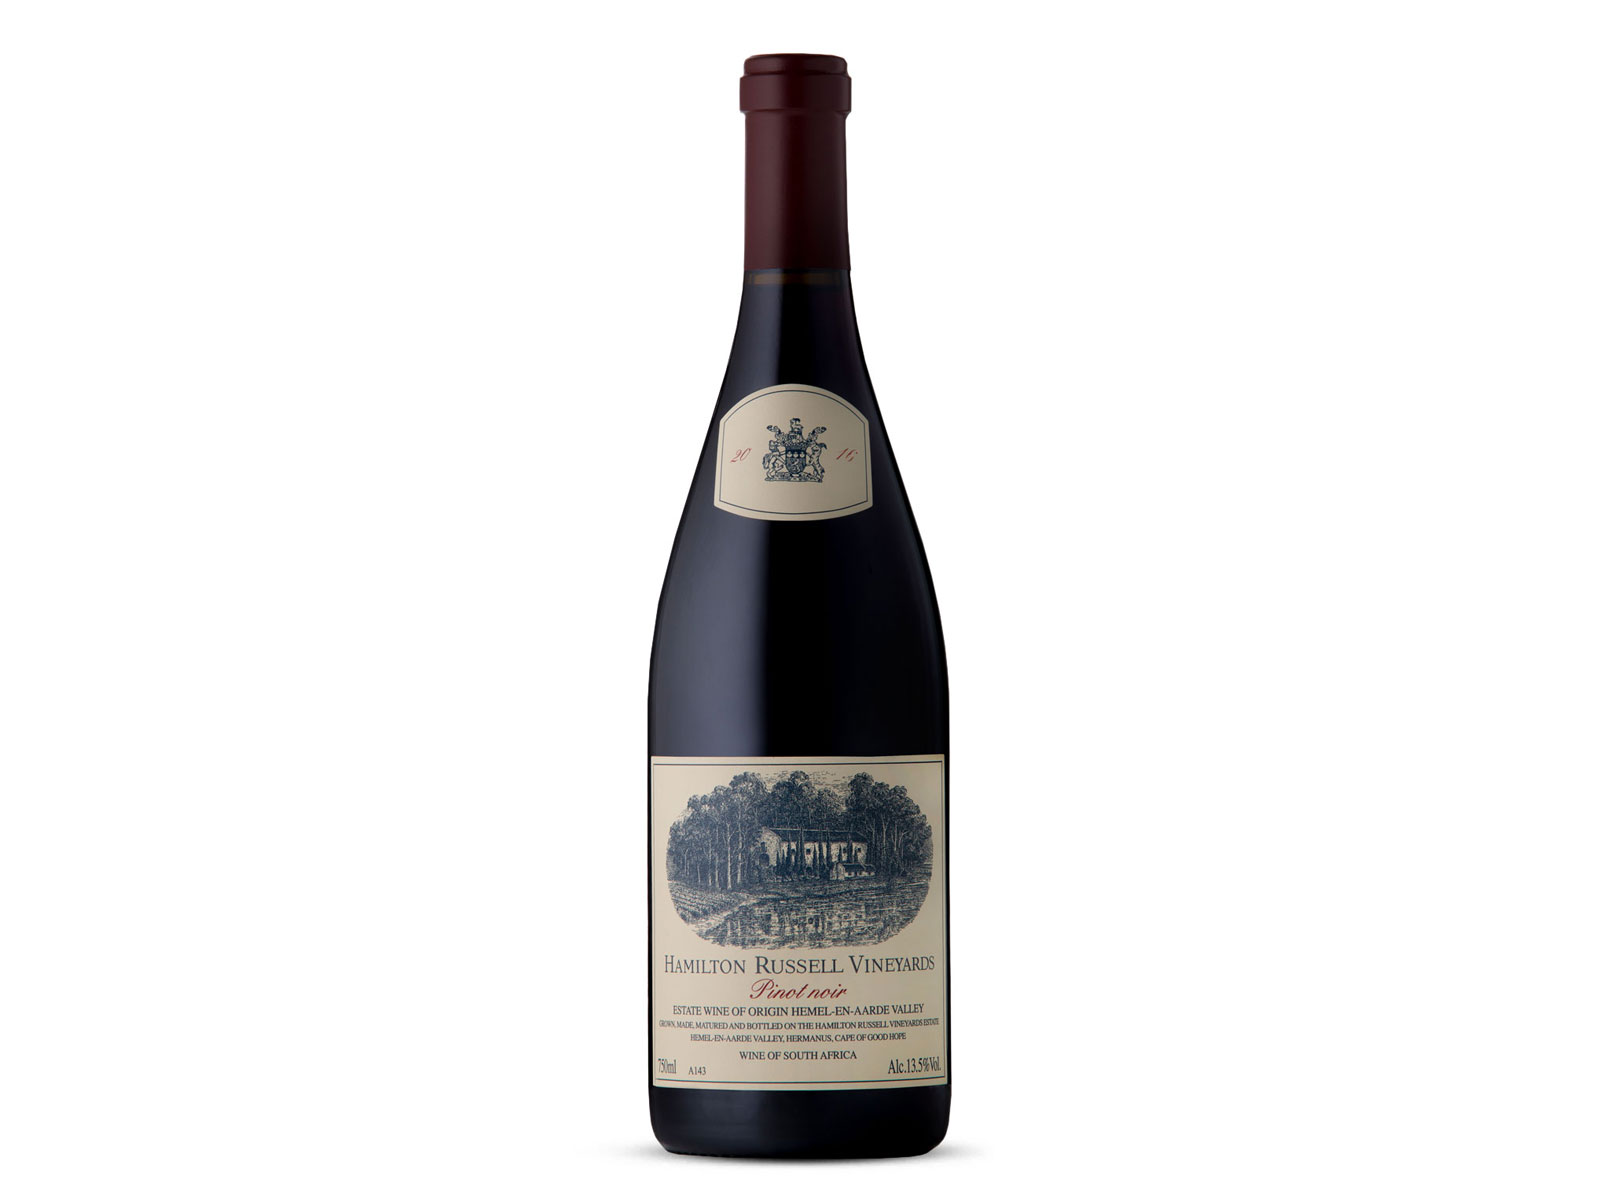 2016 Hamilton Russell Vineyards Pinot Noir